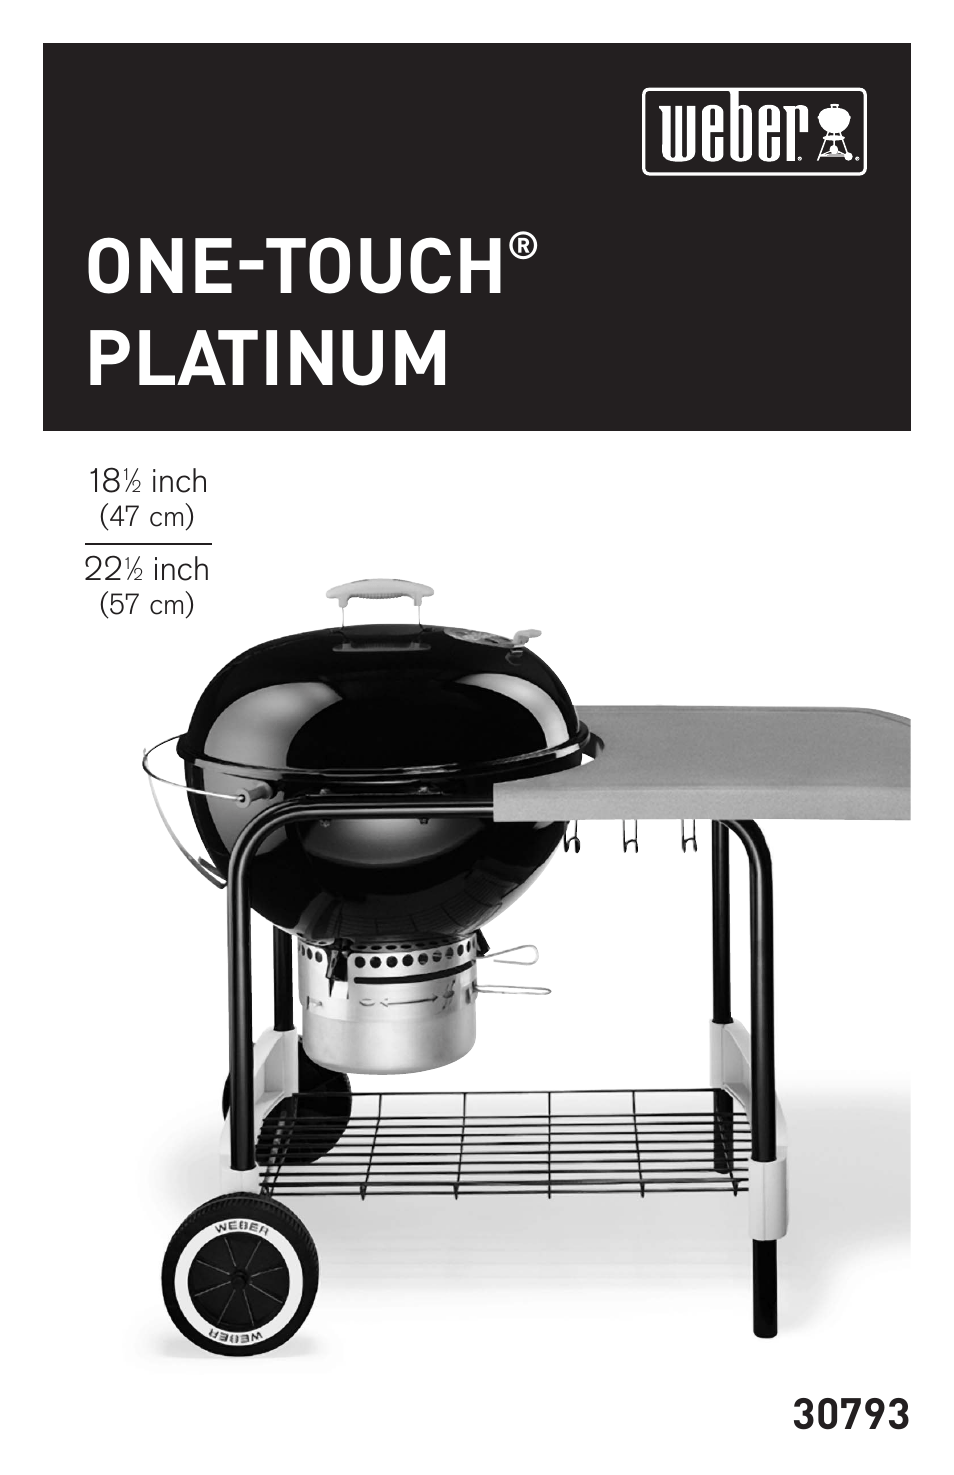 Weber Grill One Touch Weber 18 1 2 Inch One Touch Platinum 30793 User Manual 20 Pages